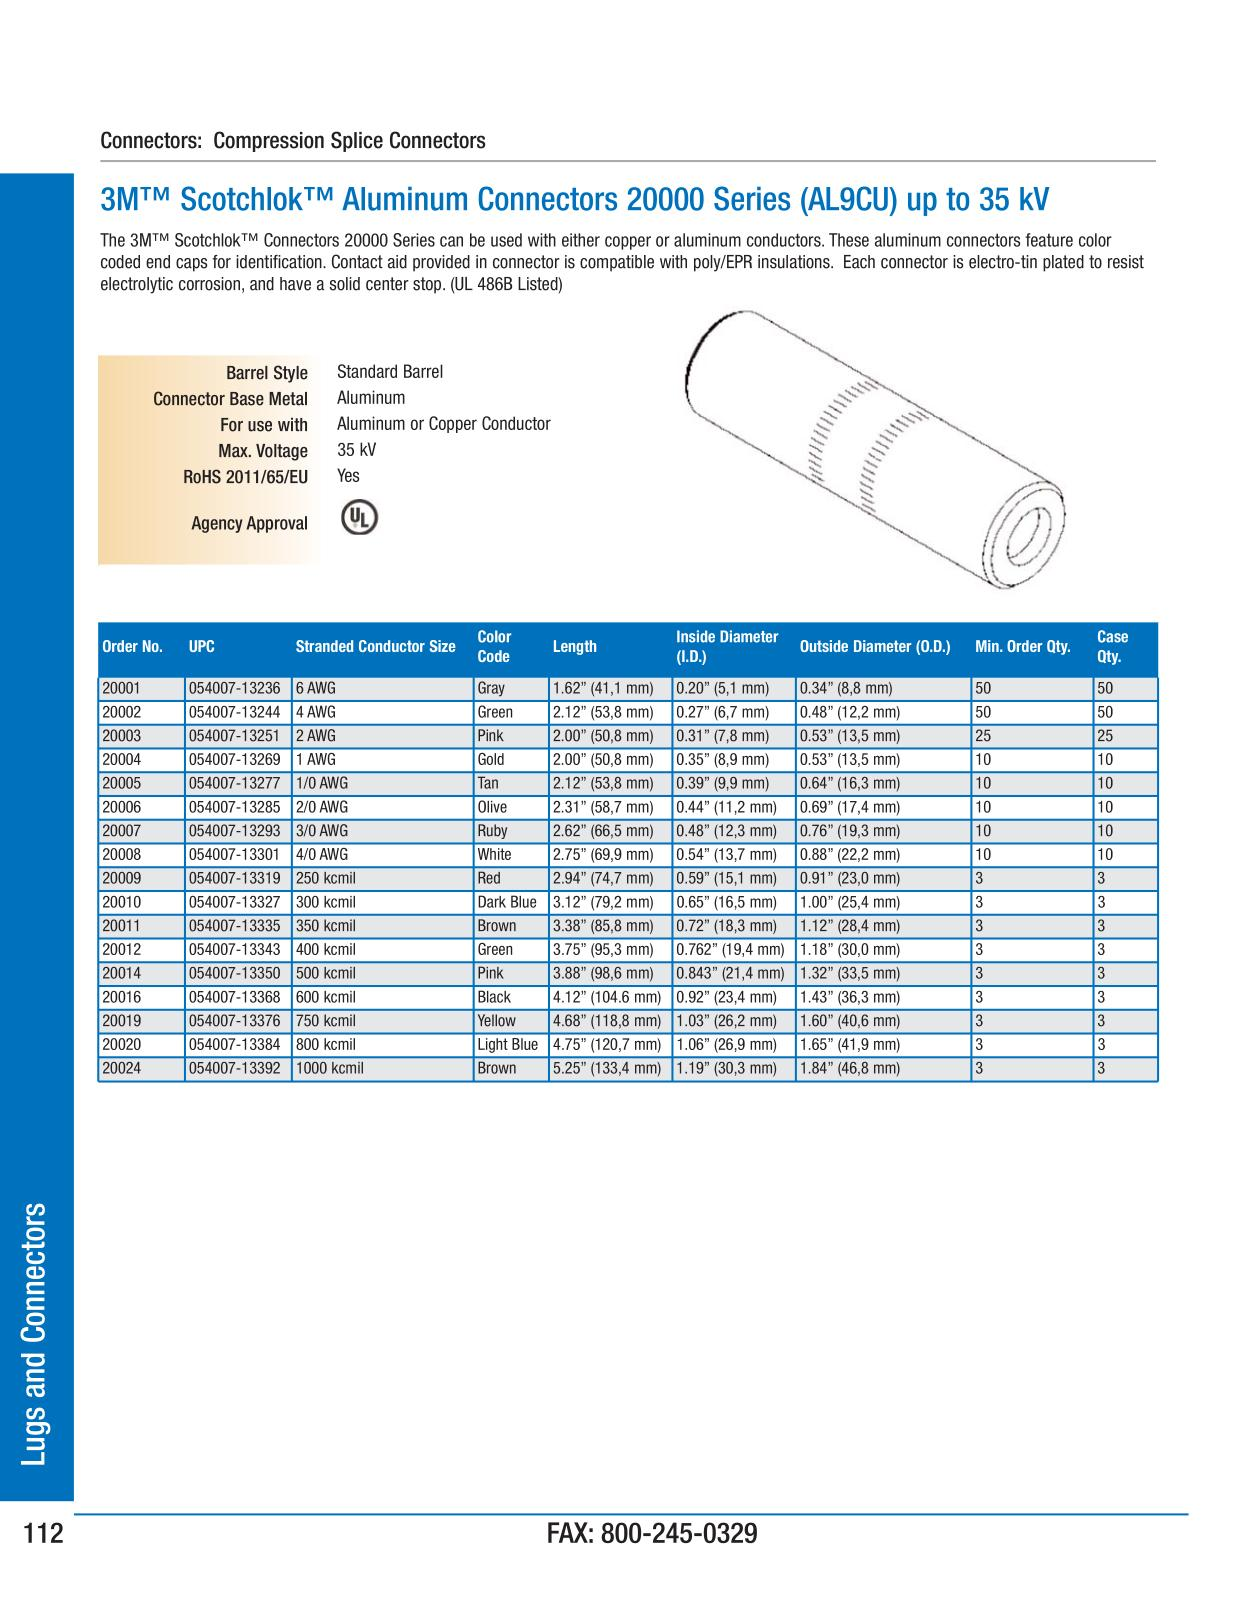 Lugs and Connectors - 3M Electrical Products Page 111